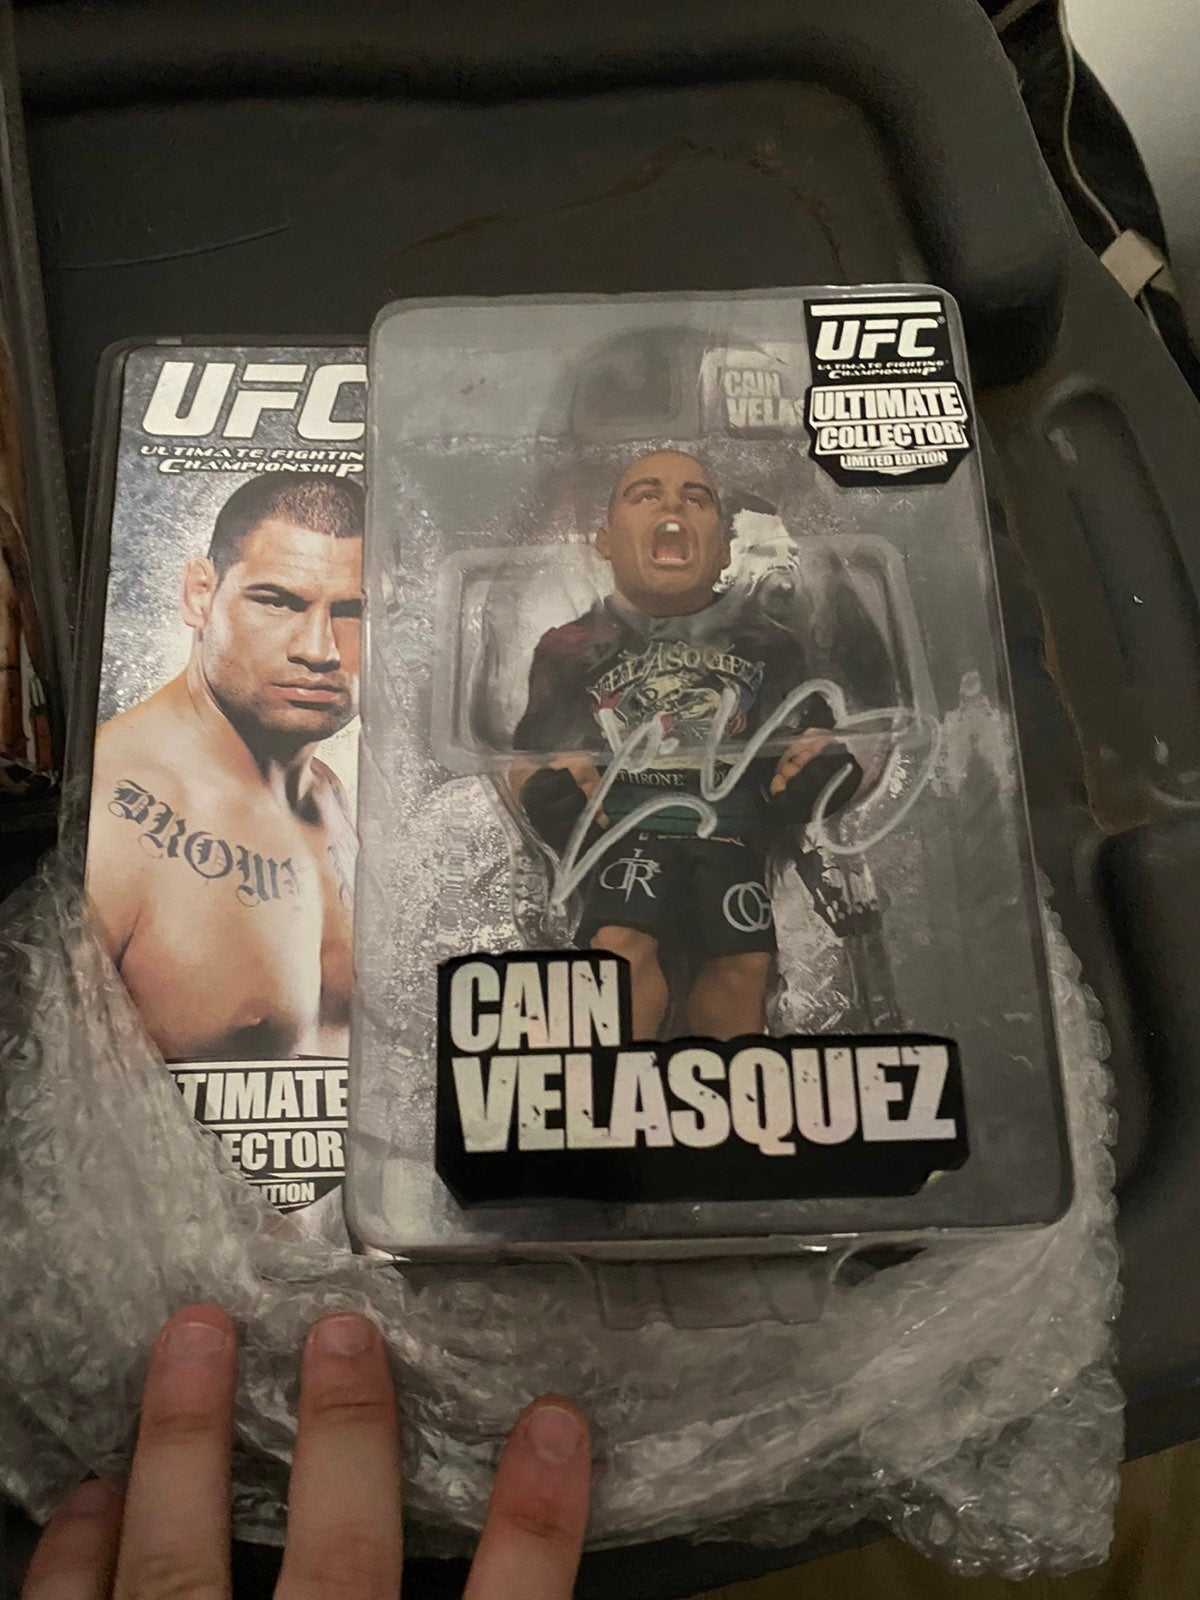 Ufc figures lot.... 2 are signed!!